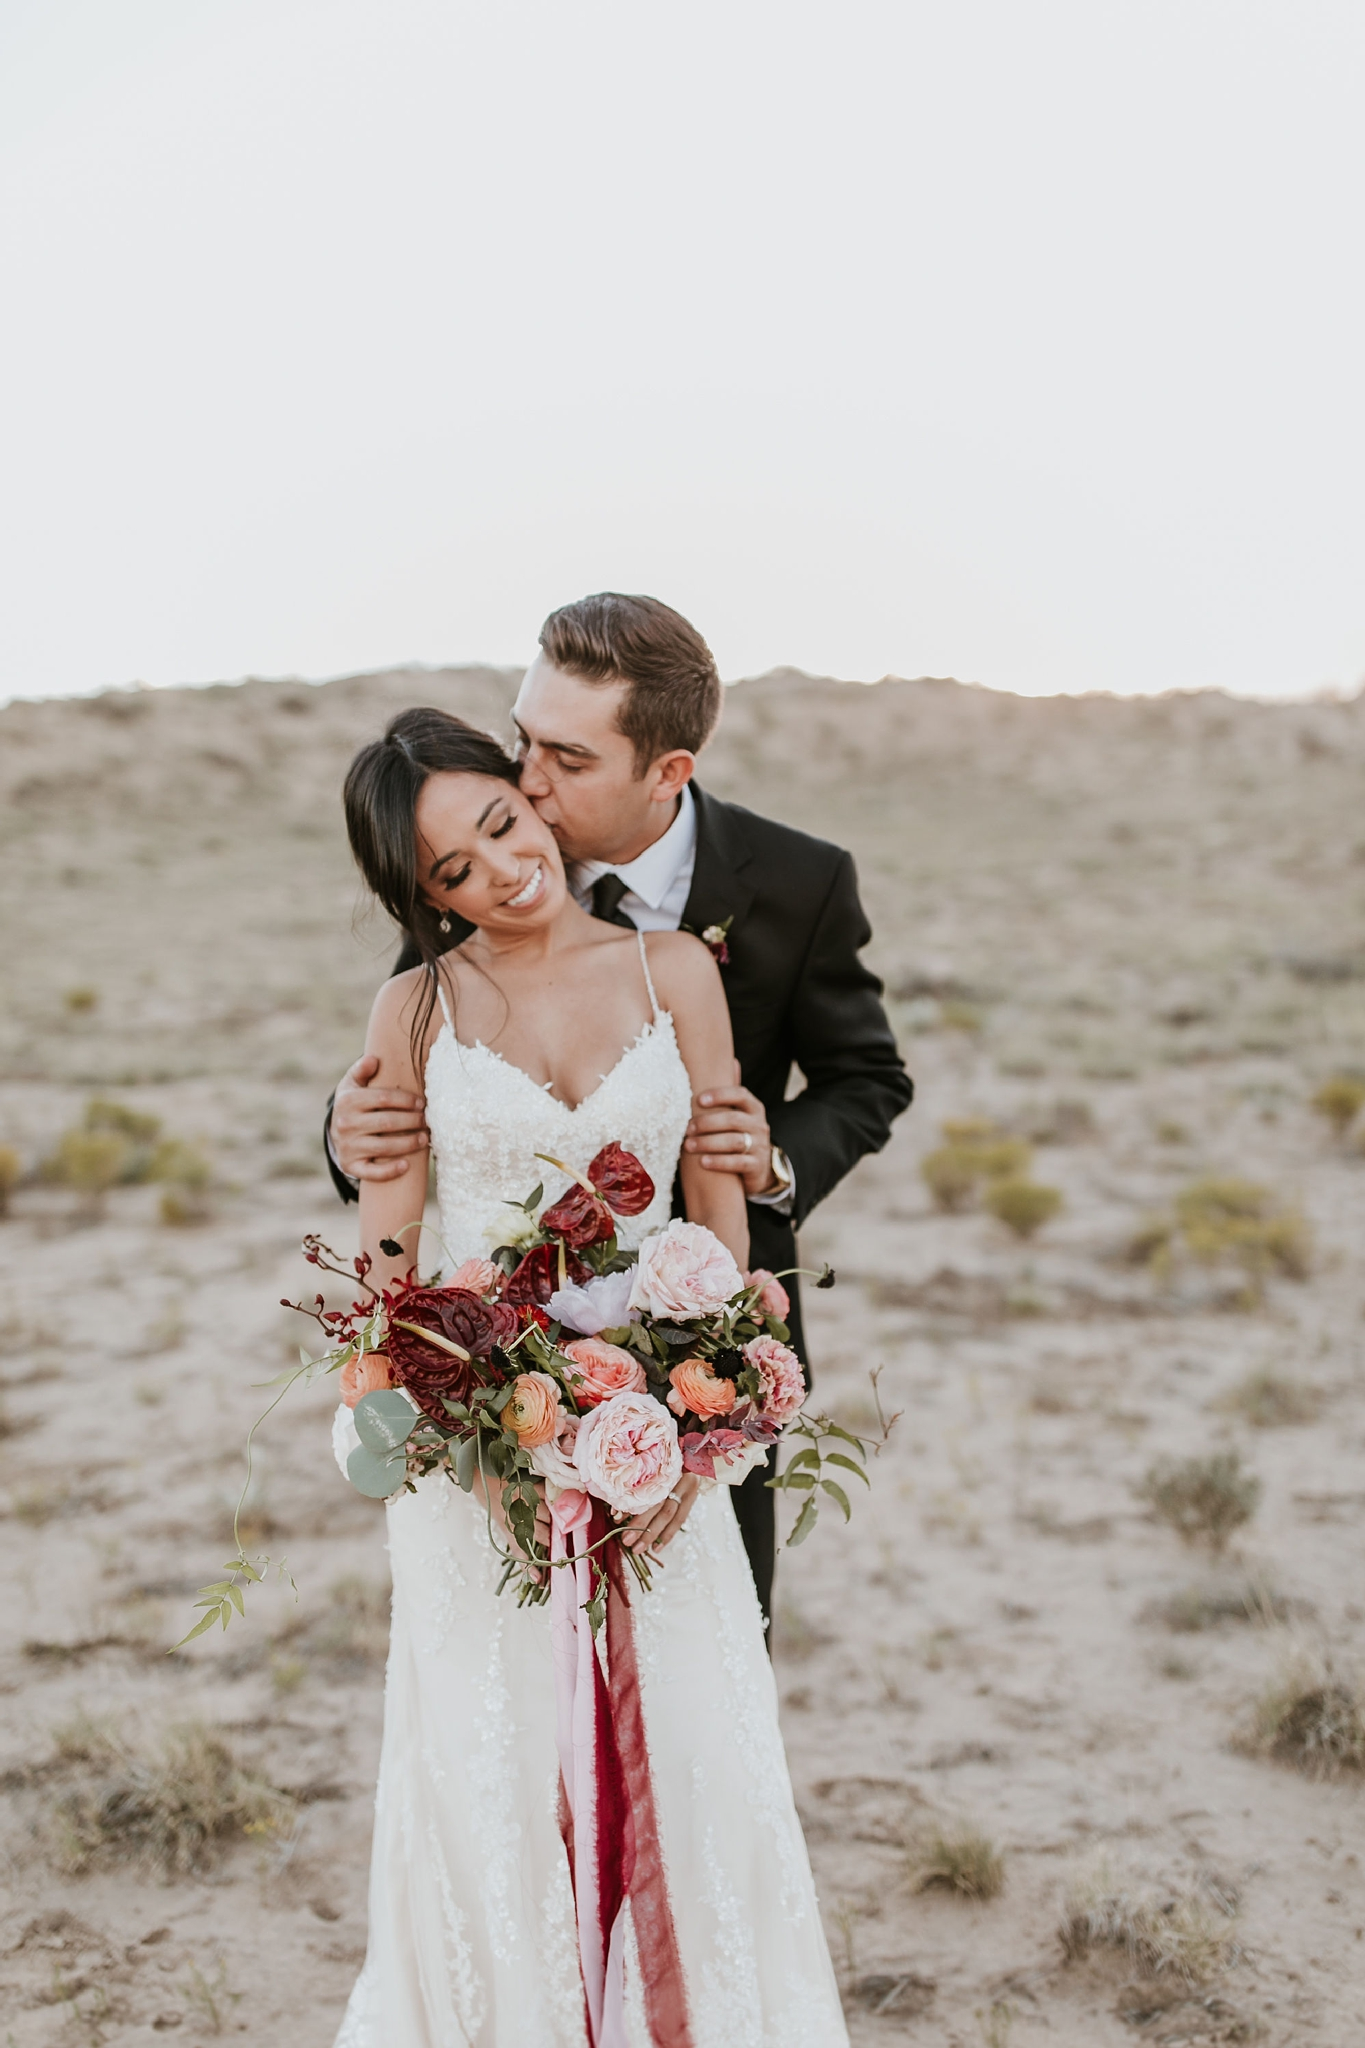 Alicia+lucia+photography+-+albuquerque+wedding+photographer+-+santa+fe+wedding+photography+-+new+mexico+wedding+photographer+-+new+mexico+florist+-+wedding+florist+-+renegade+floral_0005.jpg